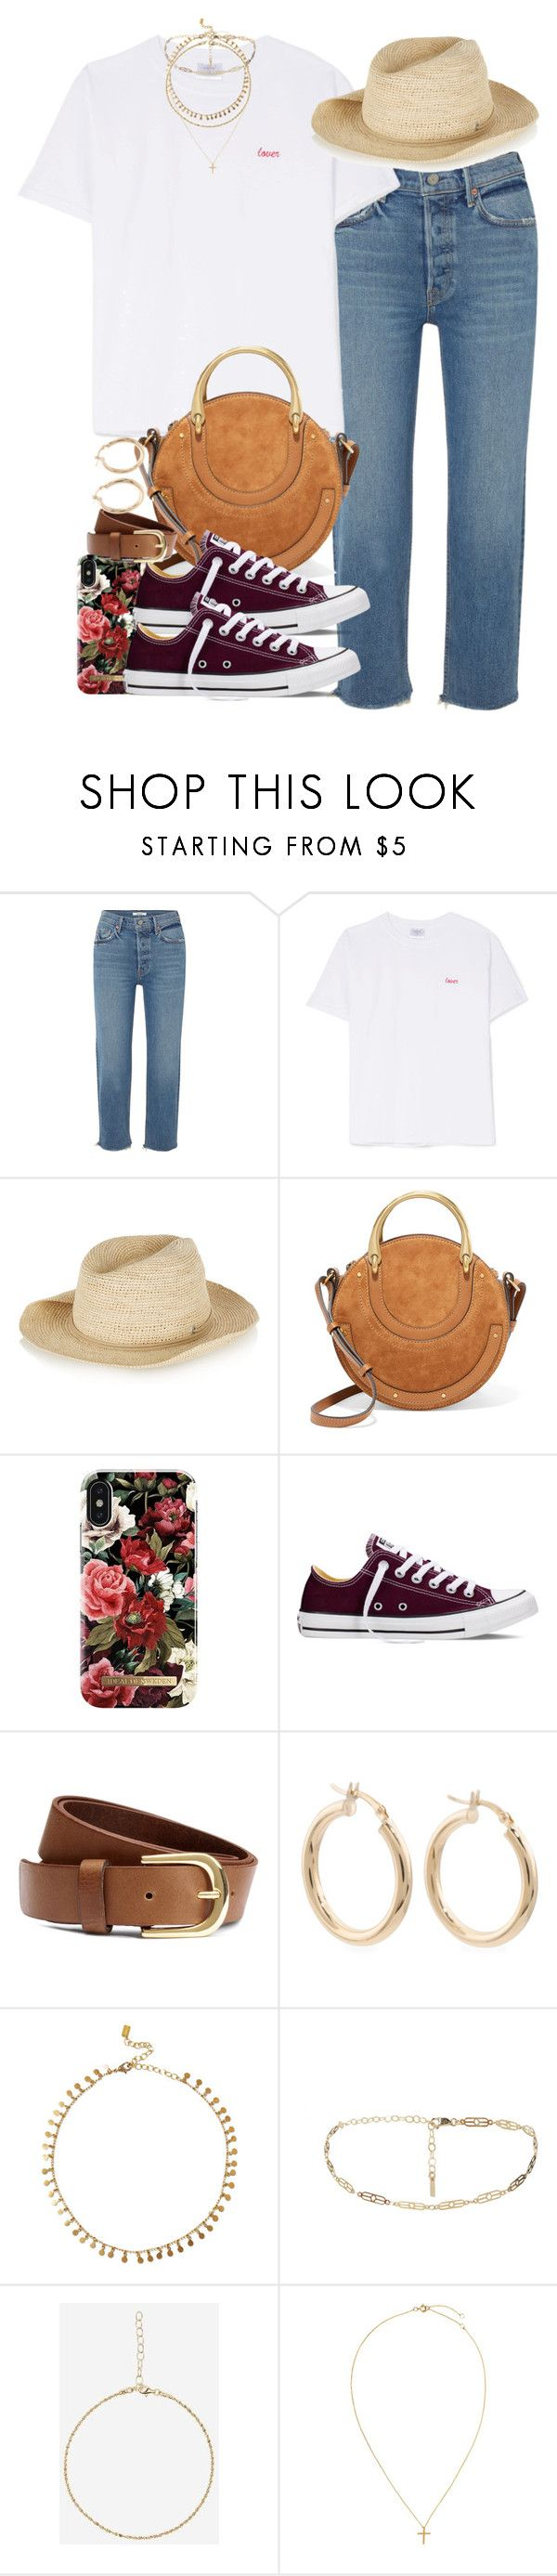 """""""Sin título #4618"""" by hellomissapple ❤ liked on Polyvore featuring GRLFRND, Double Trouble Gang, Sensi Studio, Chloé, iDeal of Sweden, Converse, H&M, Chan Luu and Jag"""